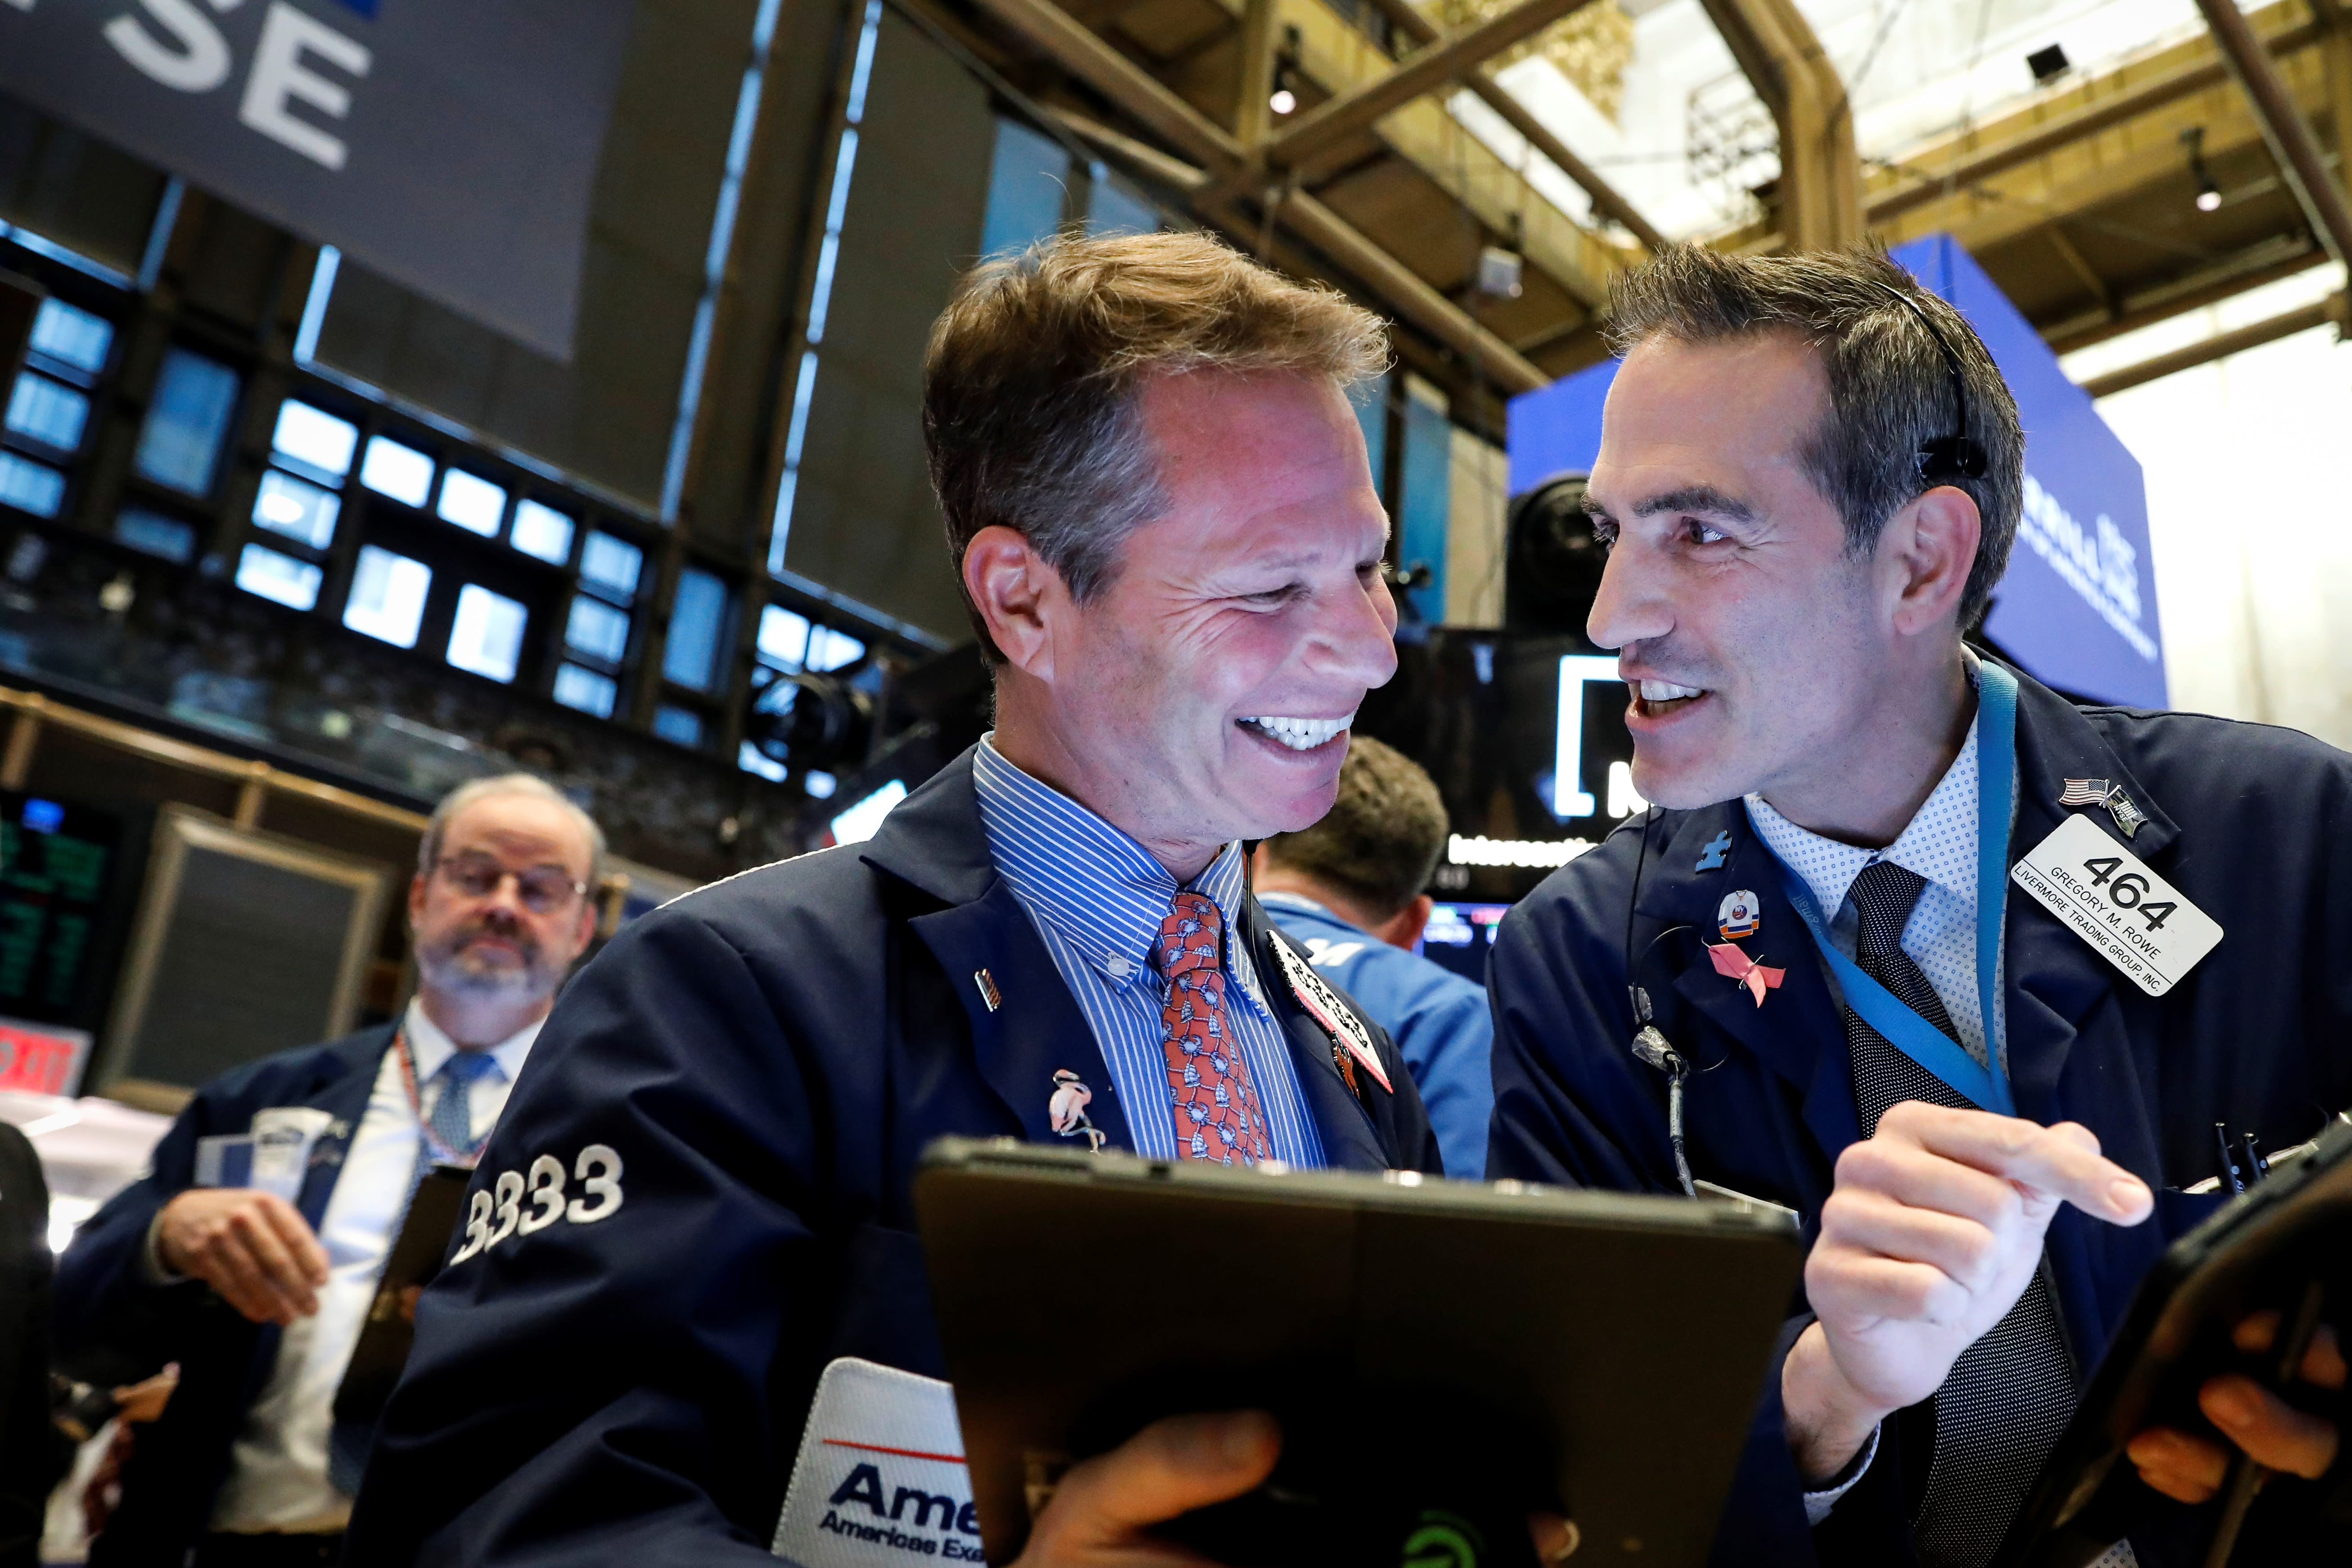 Stock market live updates: Dow futures jump, Cramer says Gilead drug gives us a 'fighting chance'